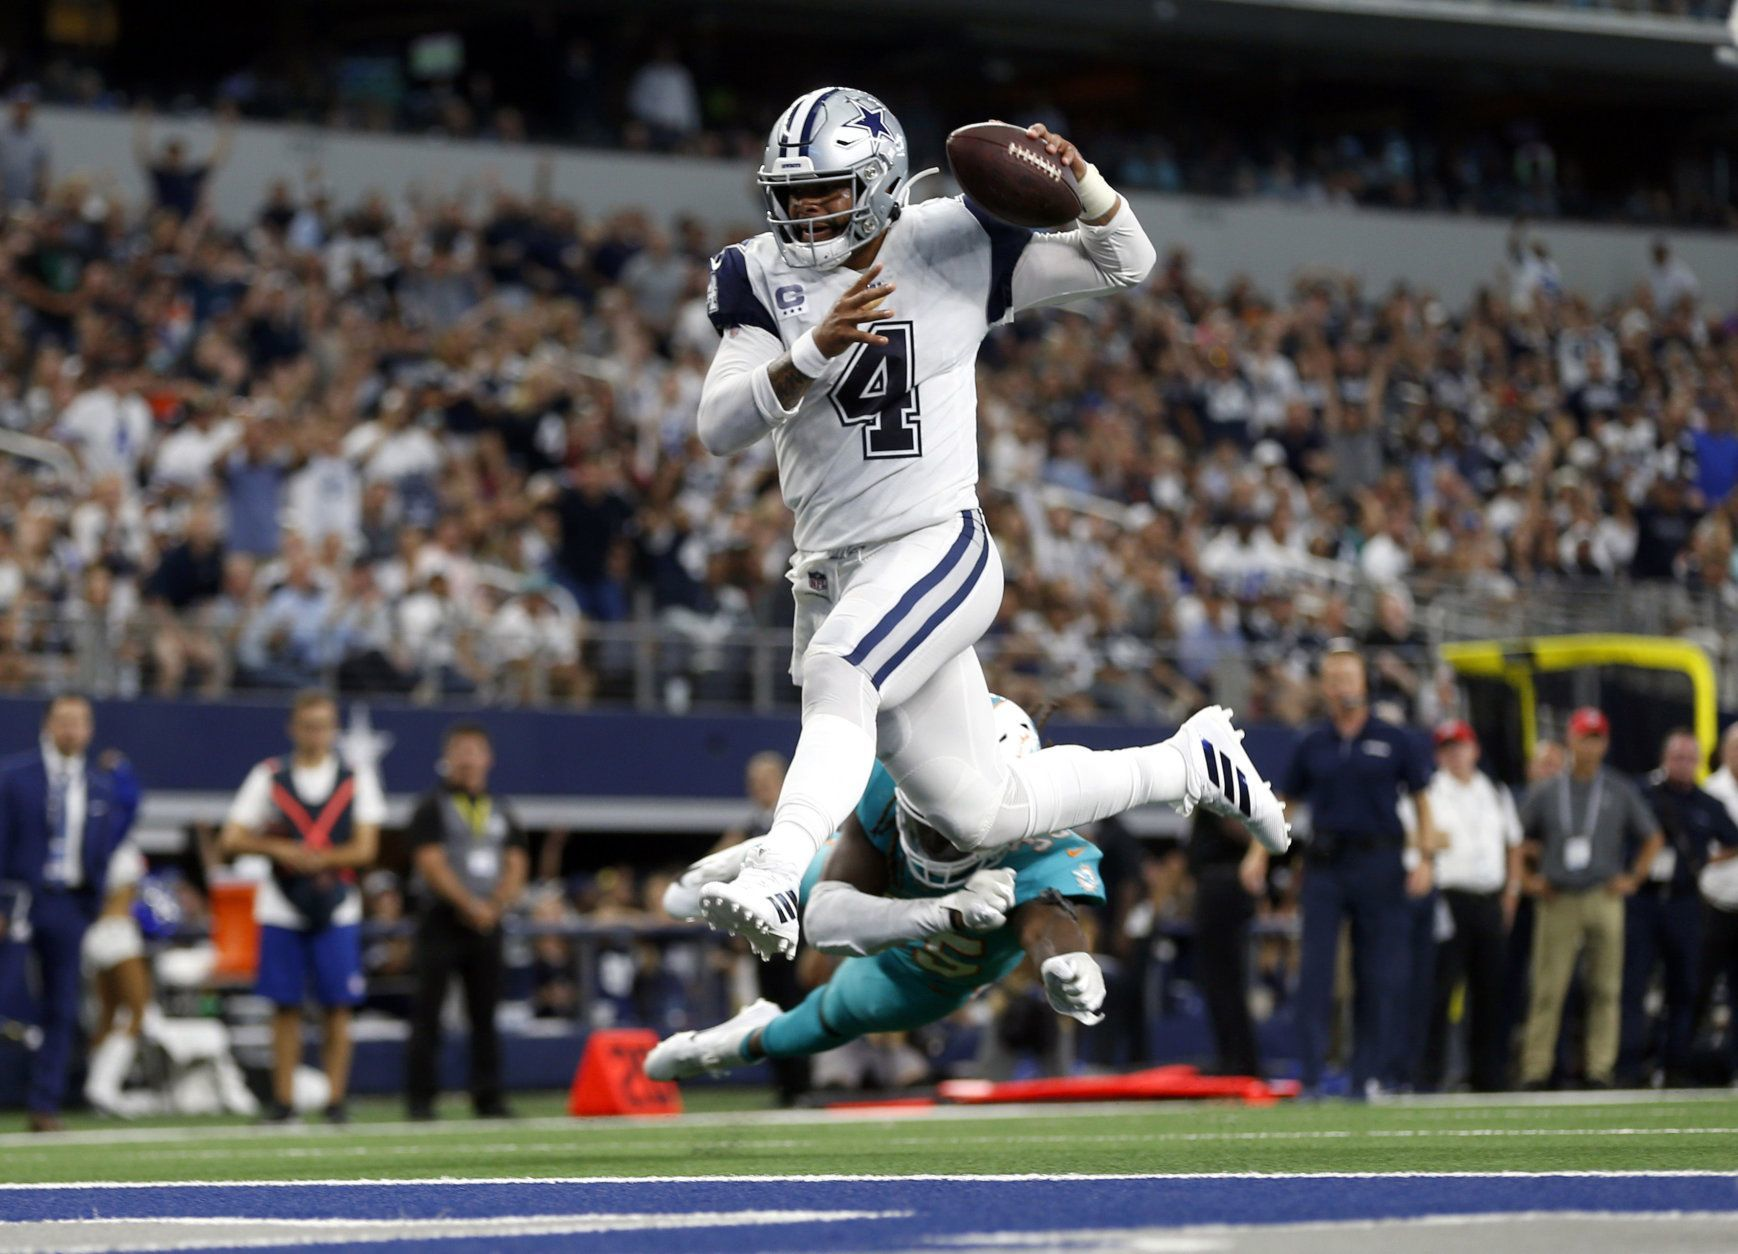 "<p><b><i>Dolphins 6</i></b><br /> <b><i>Cowboys 31</i></b></p> <p>Calm down, Dallas fans. The Cowboys beat the two worst teams in their division and needed almost three full quarters to dispatch of <a href=""https://twitter.com/ESPNStatsInfo/status/1175883607669379073?s=20"" target=""_blank"" rel=""noopener"" data-saferedirecturl=""https://www.google.com/url?q=https://twitter.com/ESPNStatsInfo/status/1175883607669379073?s%3D20&amp;source=gmail&amp;ust=1569294743341000&amp;usg=AFQjCNF4tqQIHfOXZVRv1dBn01p_BpErmg"">a historically bad team</a> that&#8217;s obviously tanking. Win in New Orleans and beat an improved Packers team in successive weeks and <i>then</i> you can talk.</p>"